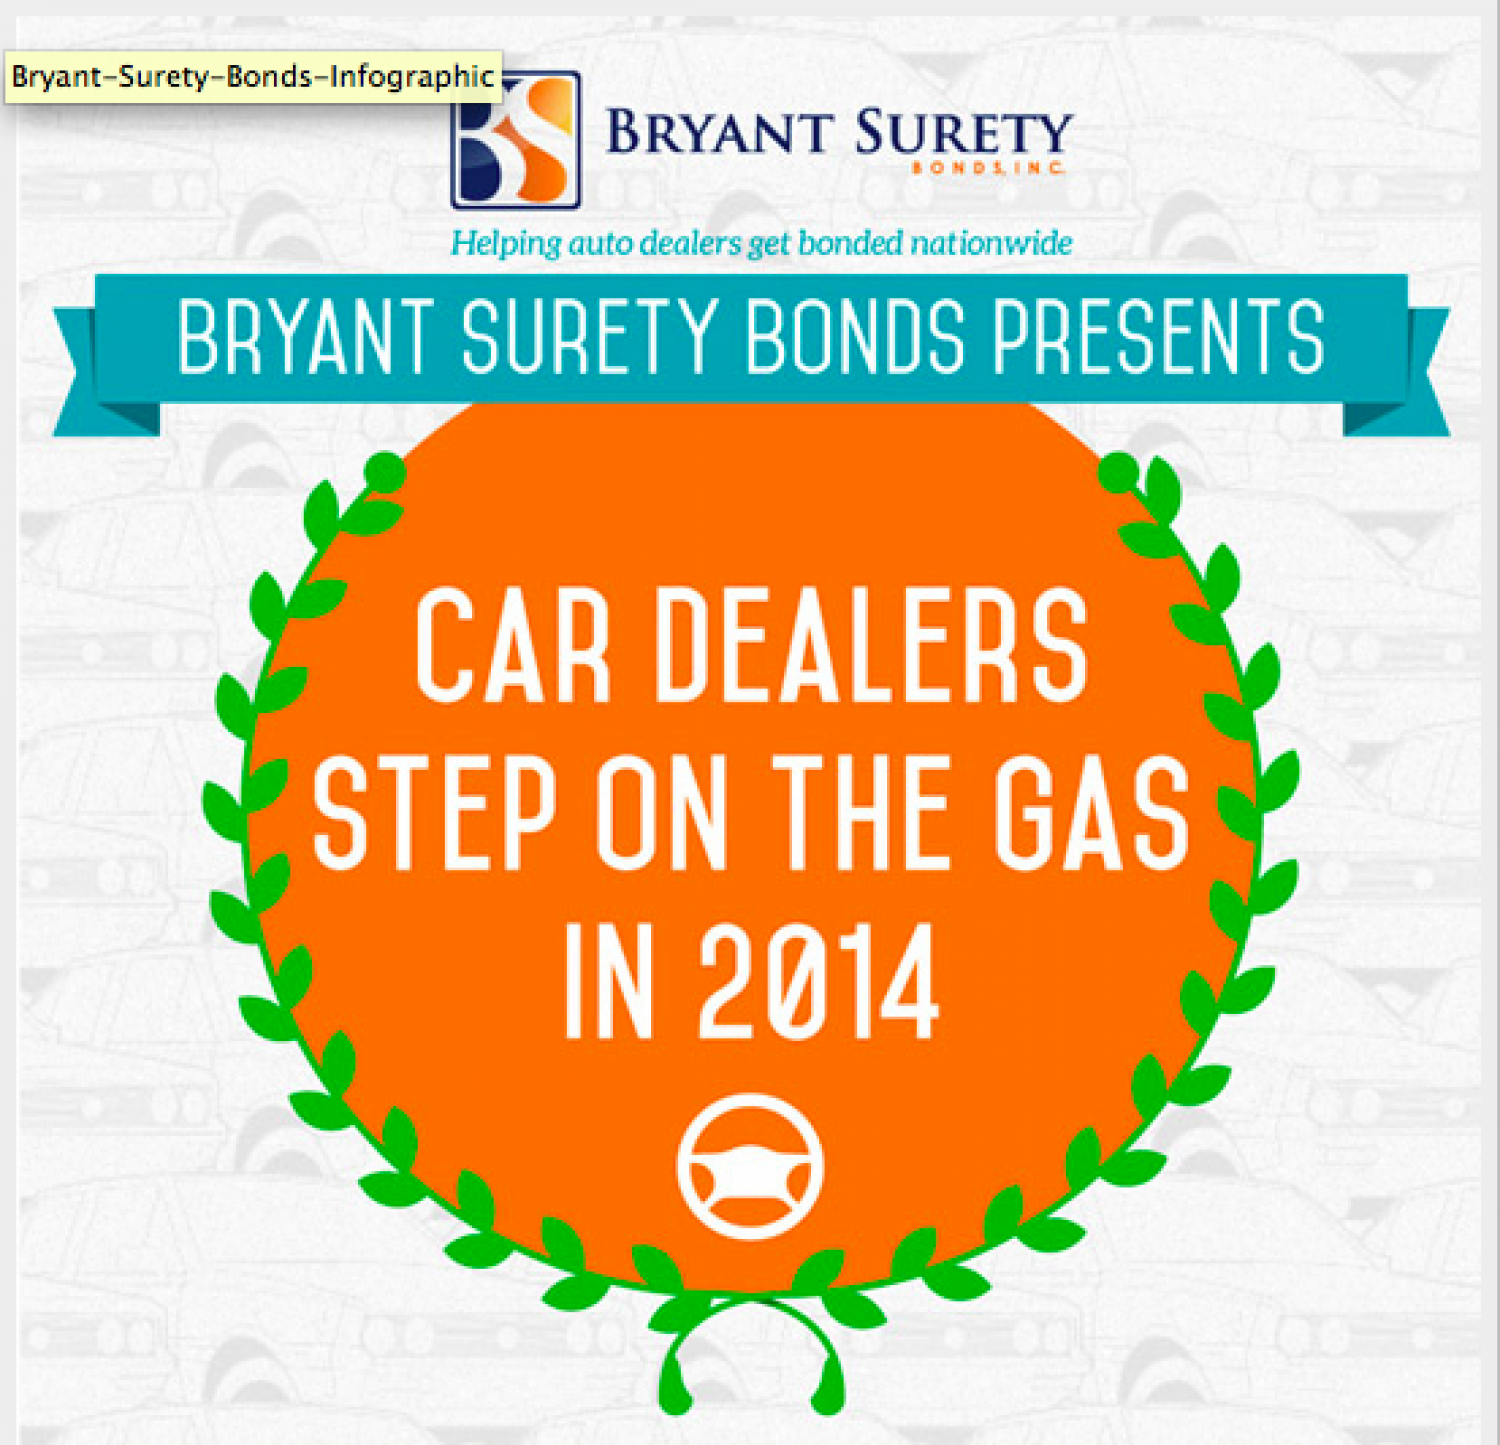 Car Dealers Step On The Gas In 2014 Infographic